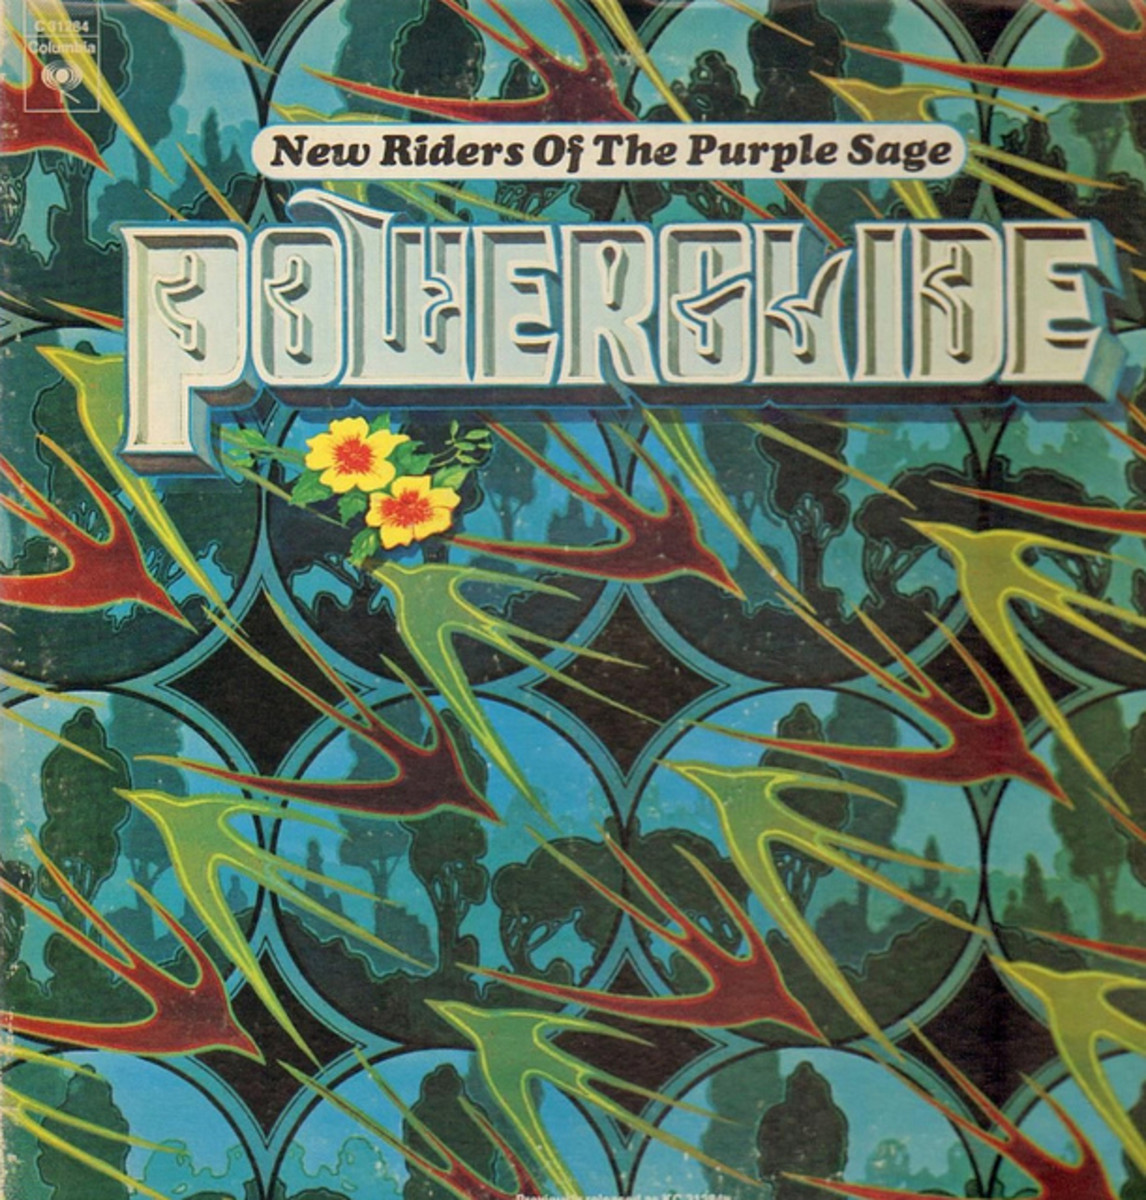 "New Riders of the Purple Sage ""Powerglide"" Columbia Records KC 31284 12"" LP Vinyl Record US Pressing (1972) Album Cover Art by Alton Kelley & Stanley Mouse"